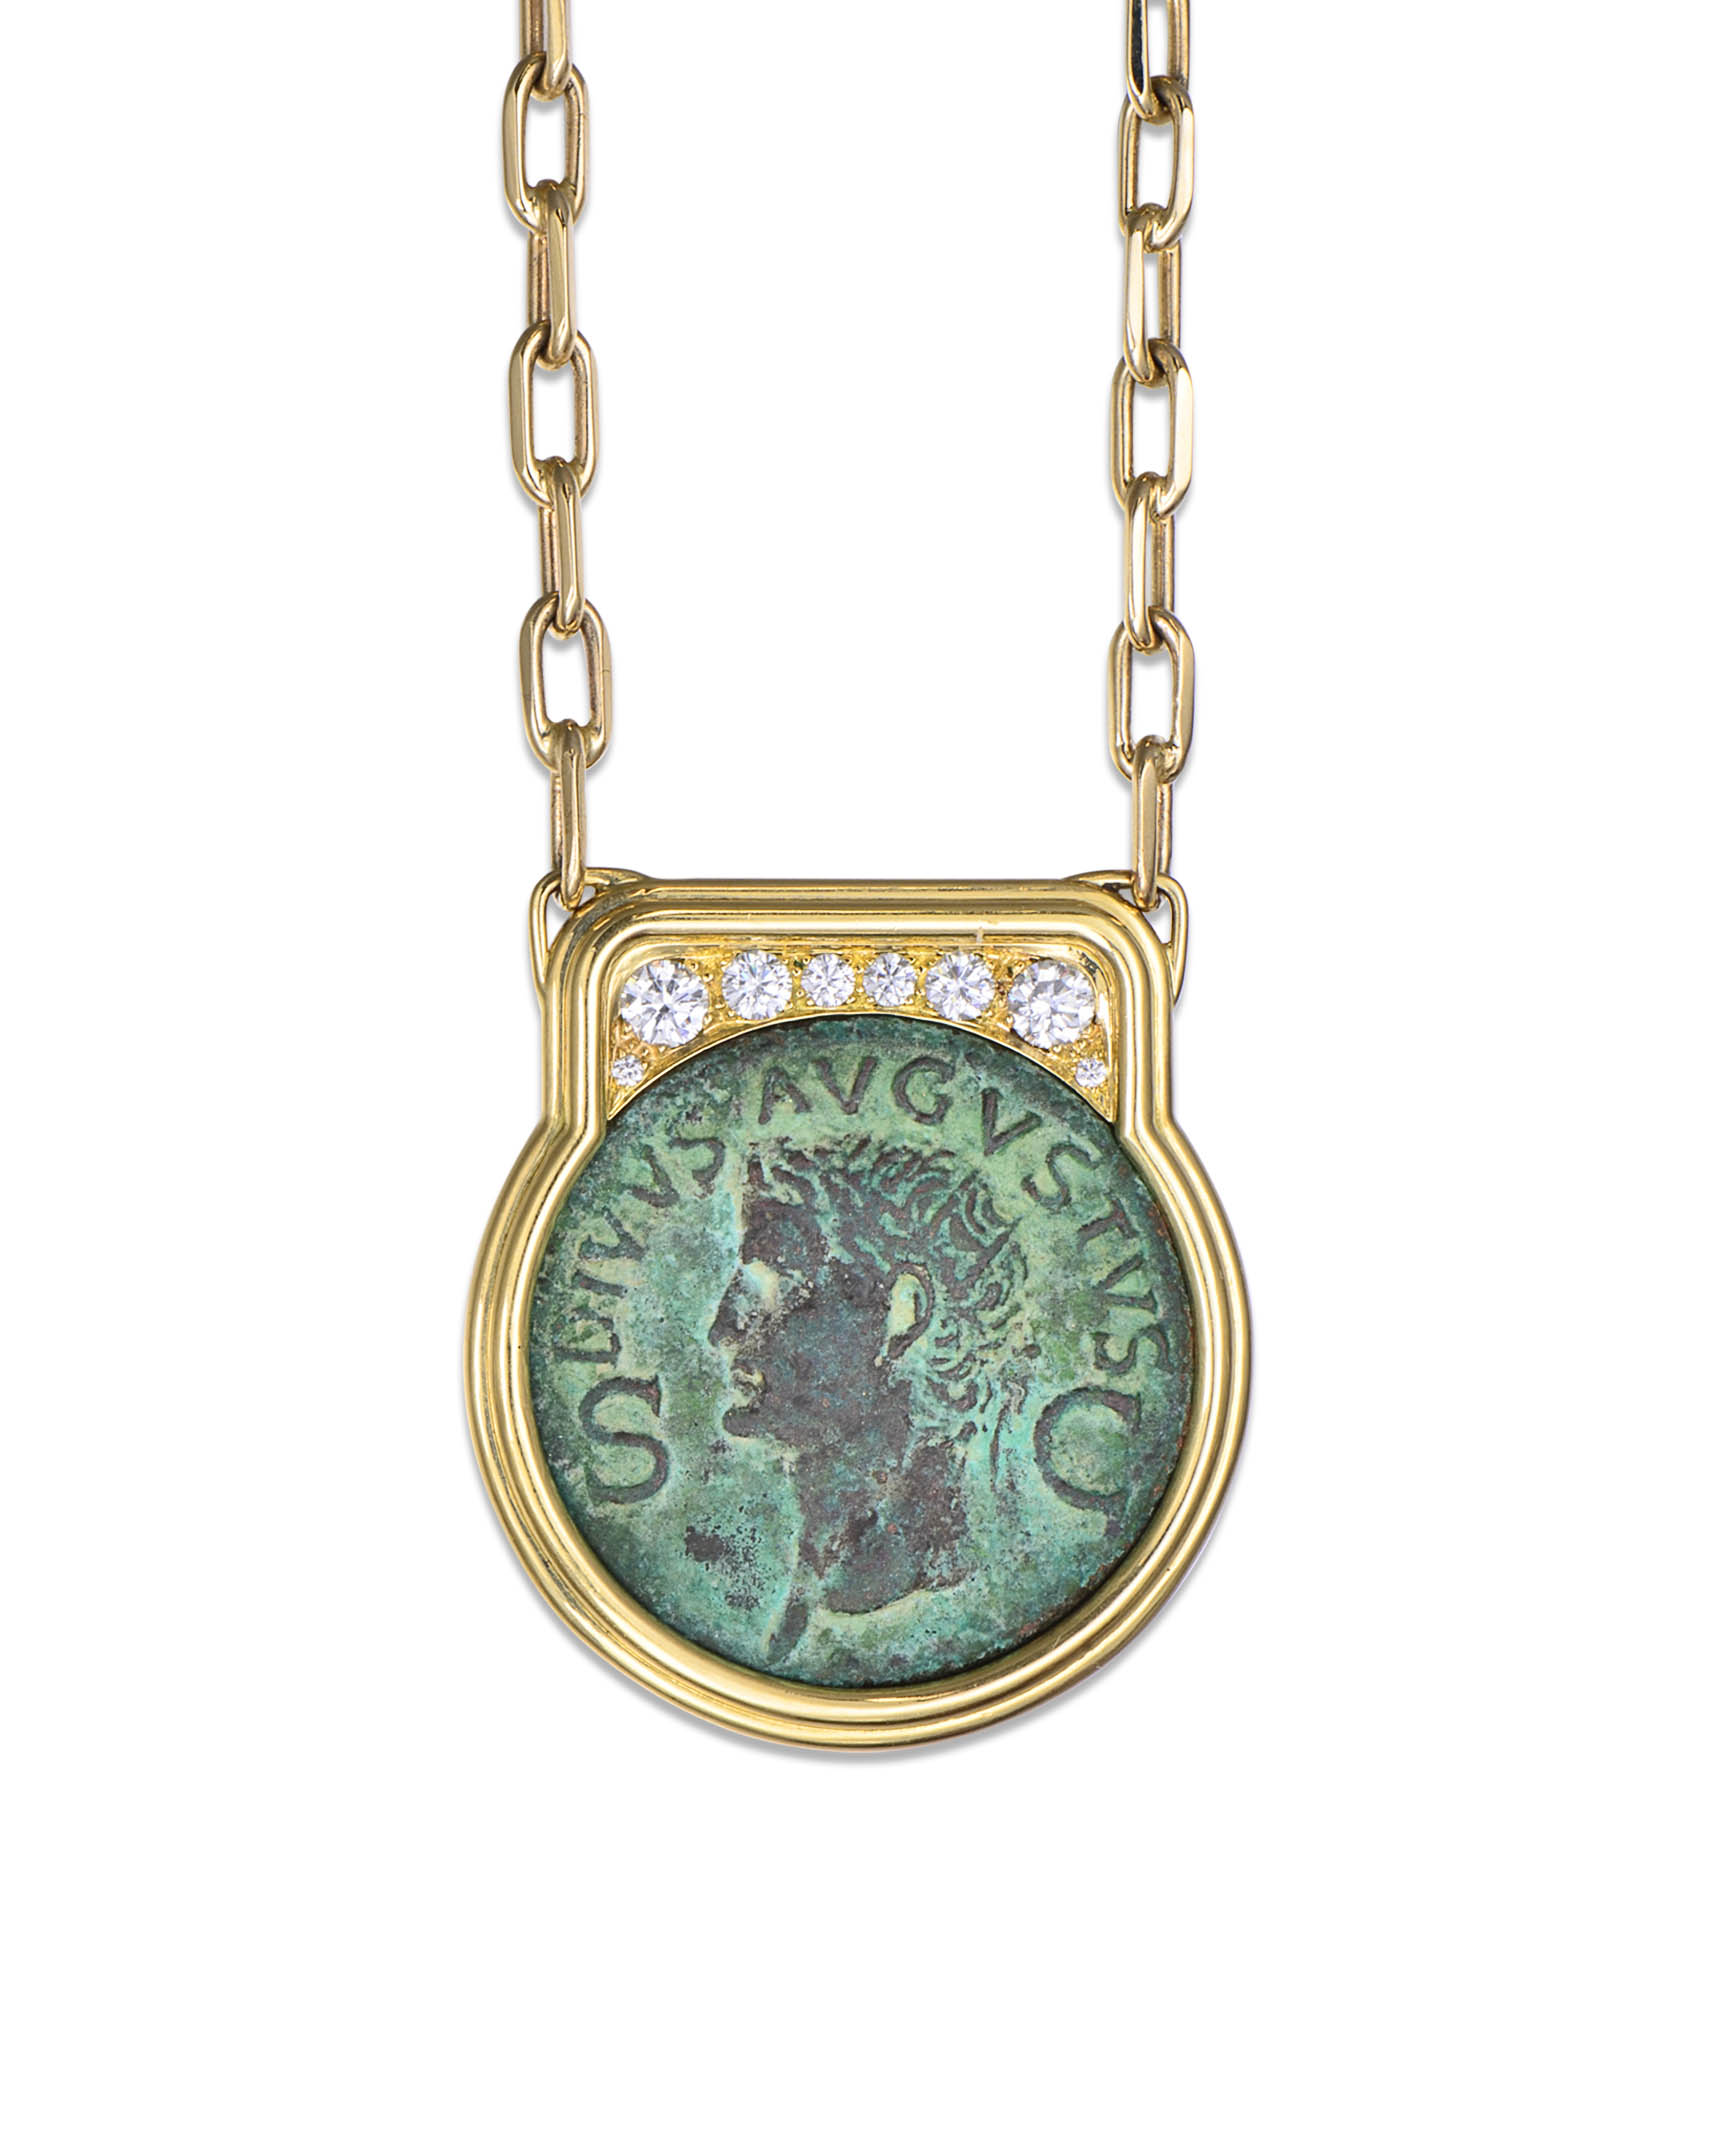 coin a jewels roman auctions april and gold auction of wright necklace bulgari